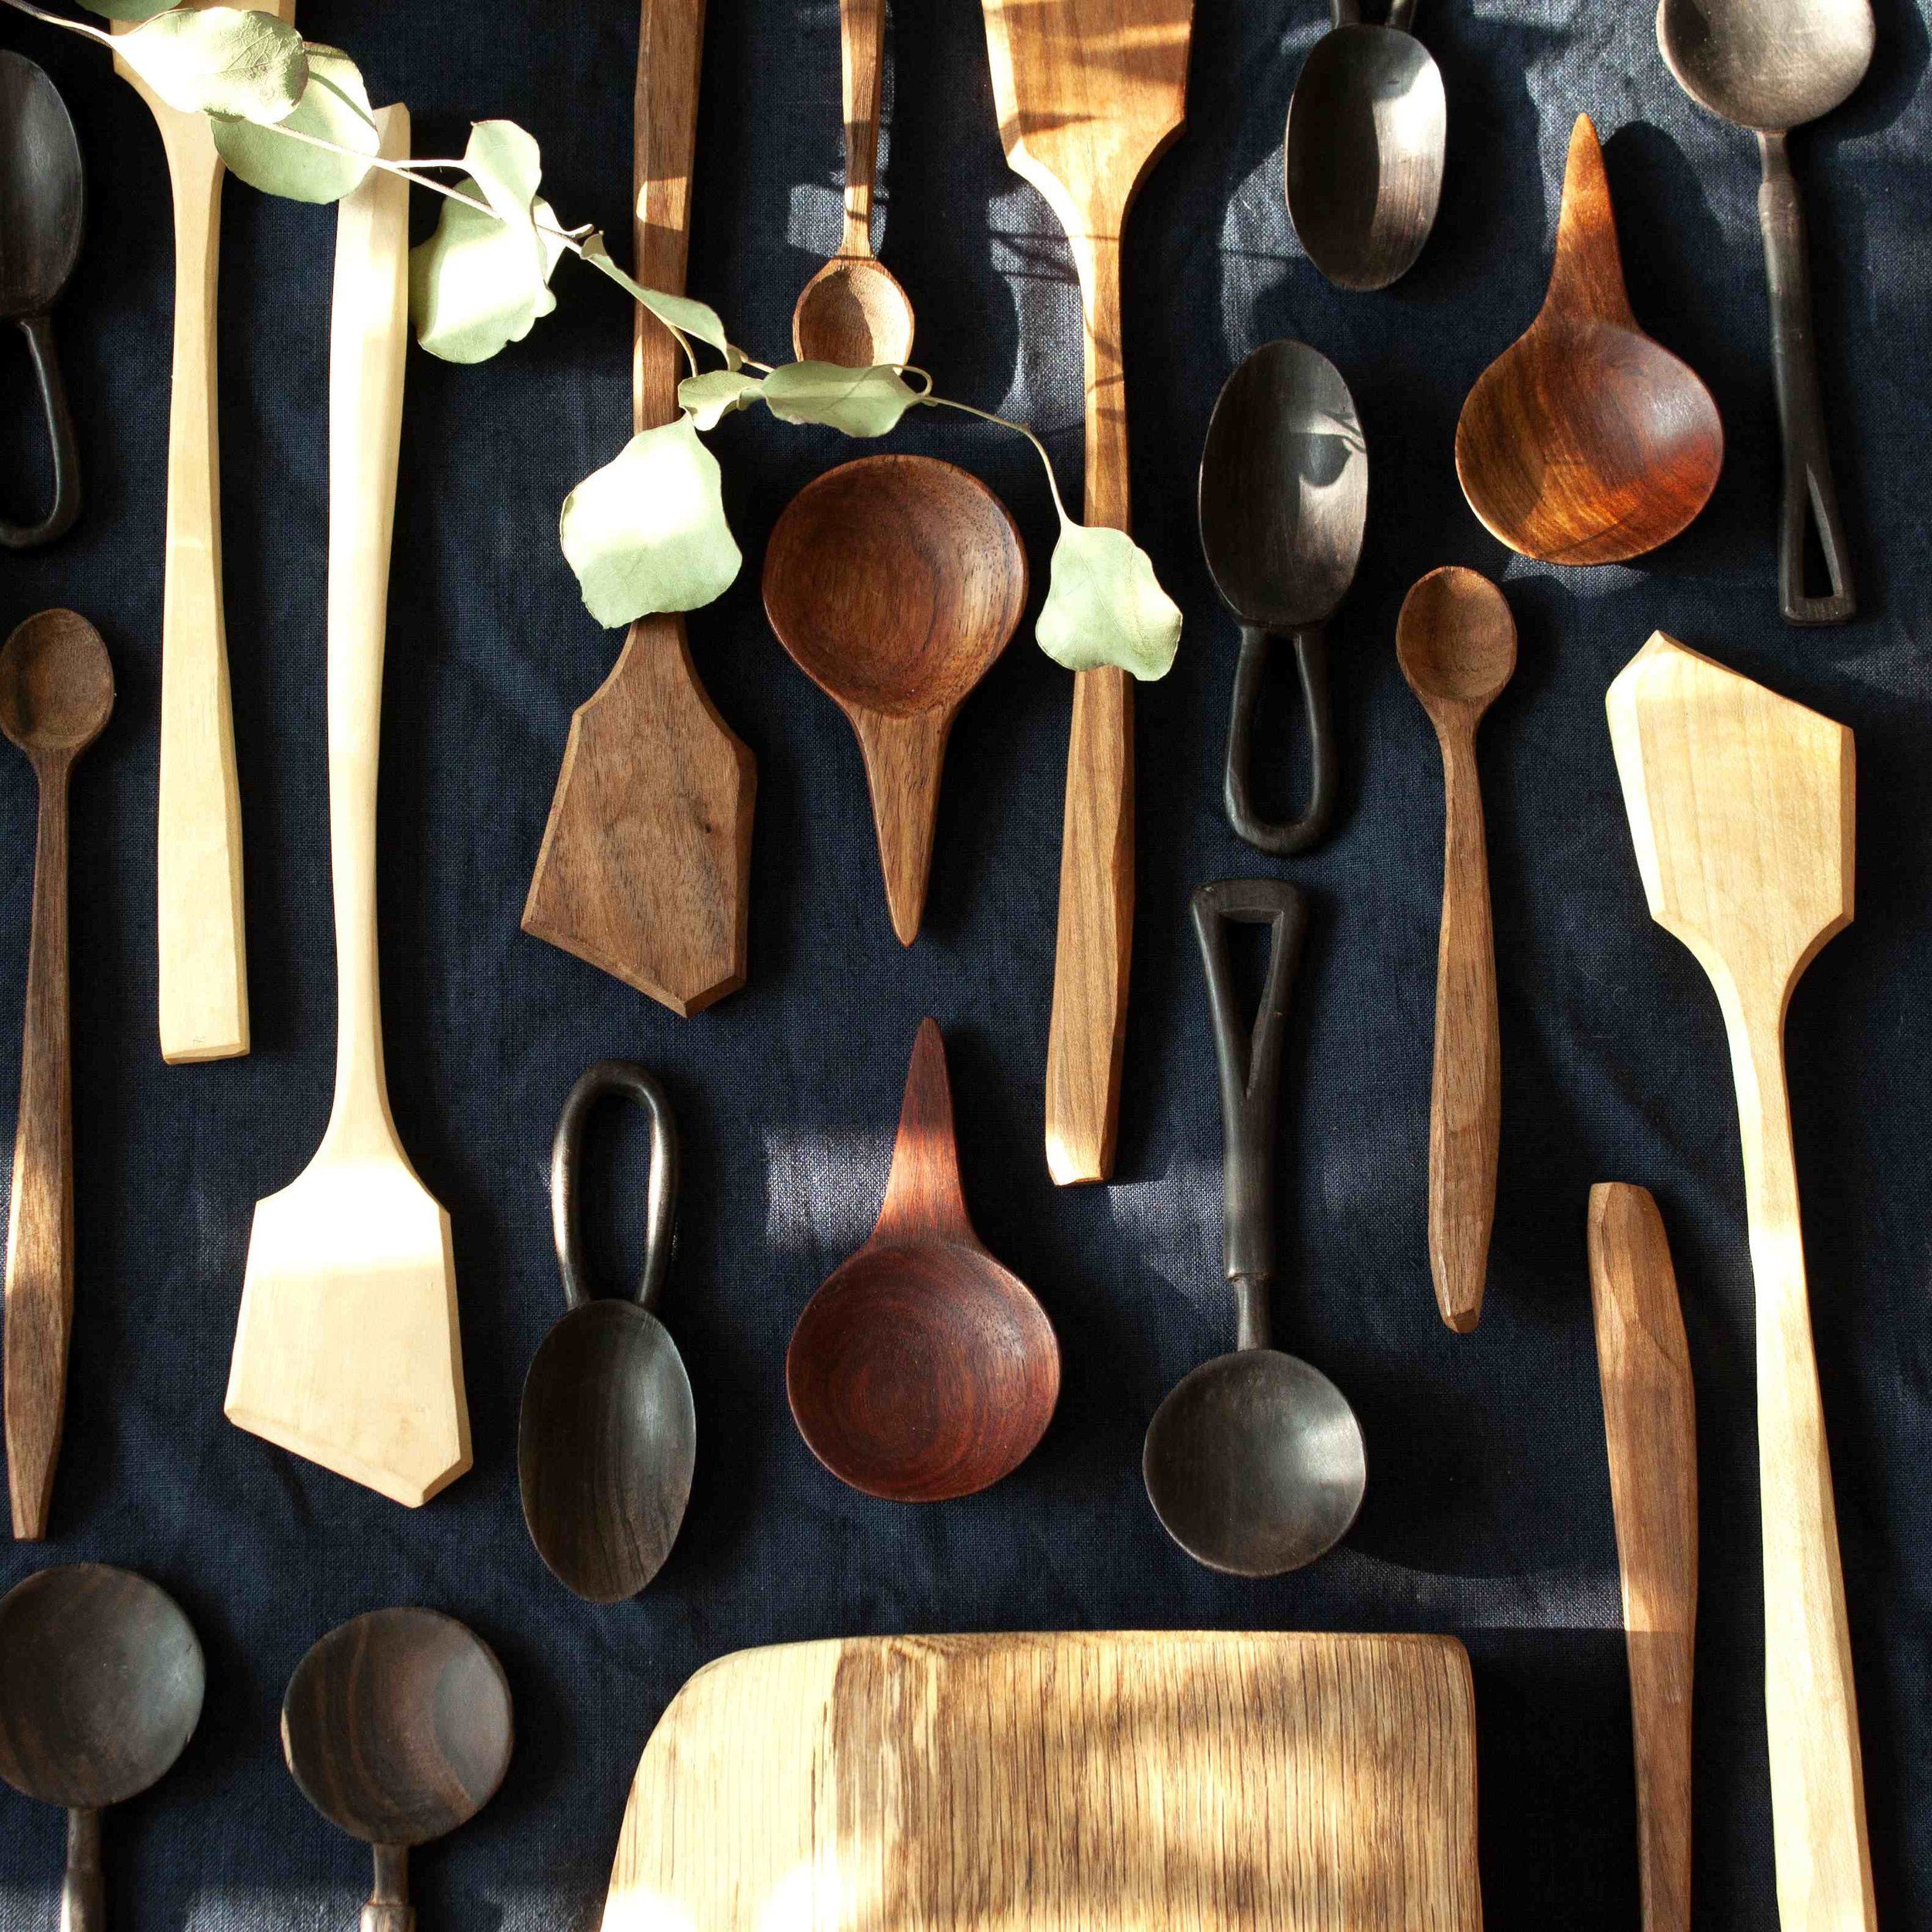 Wooden Utensils copy.jpg